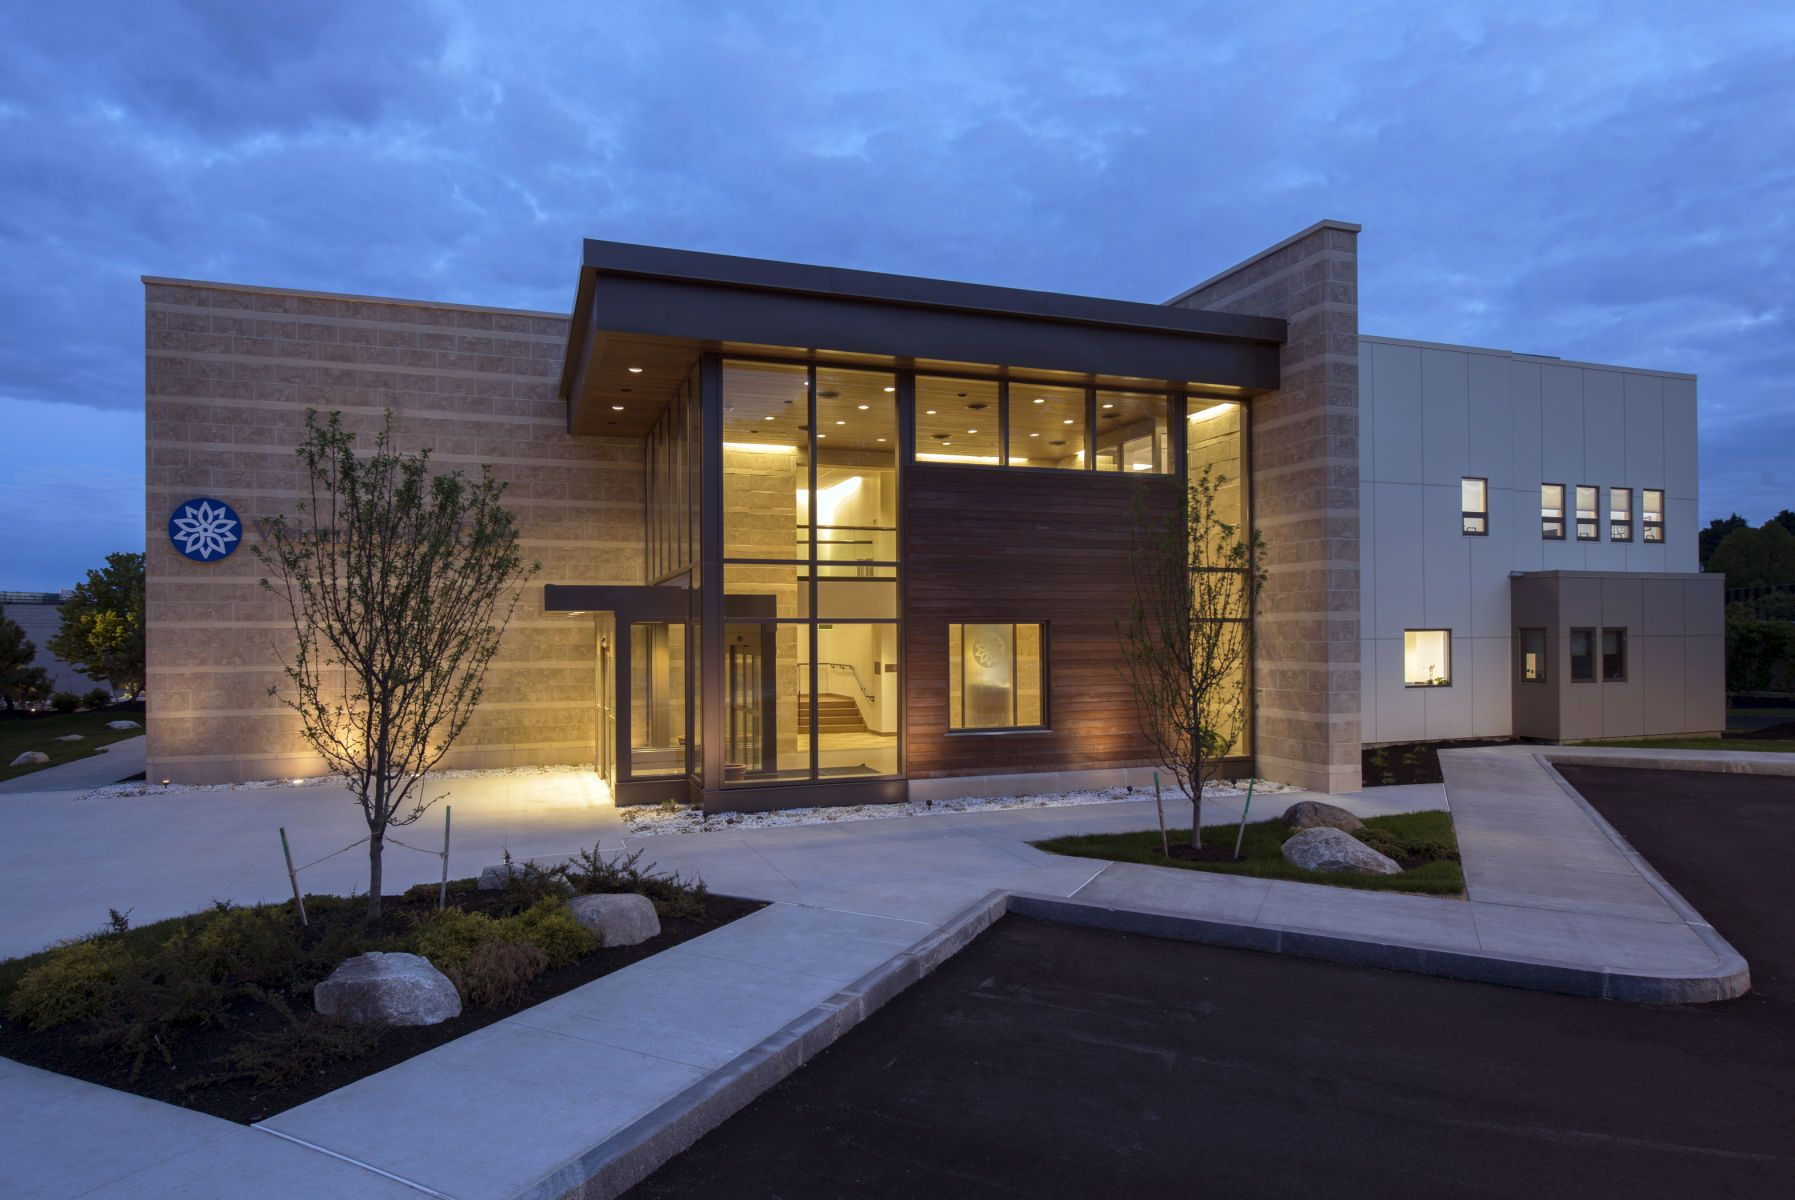 Best small award winning commercial office design 9519 for Exterior design office buildings